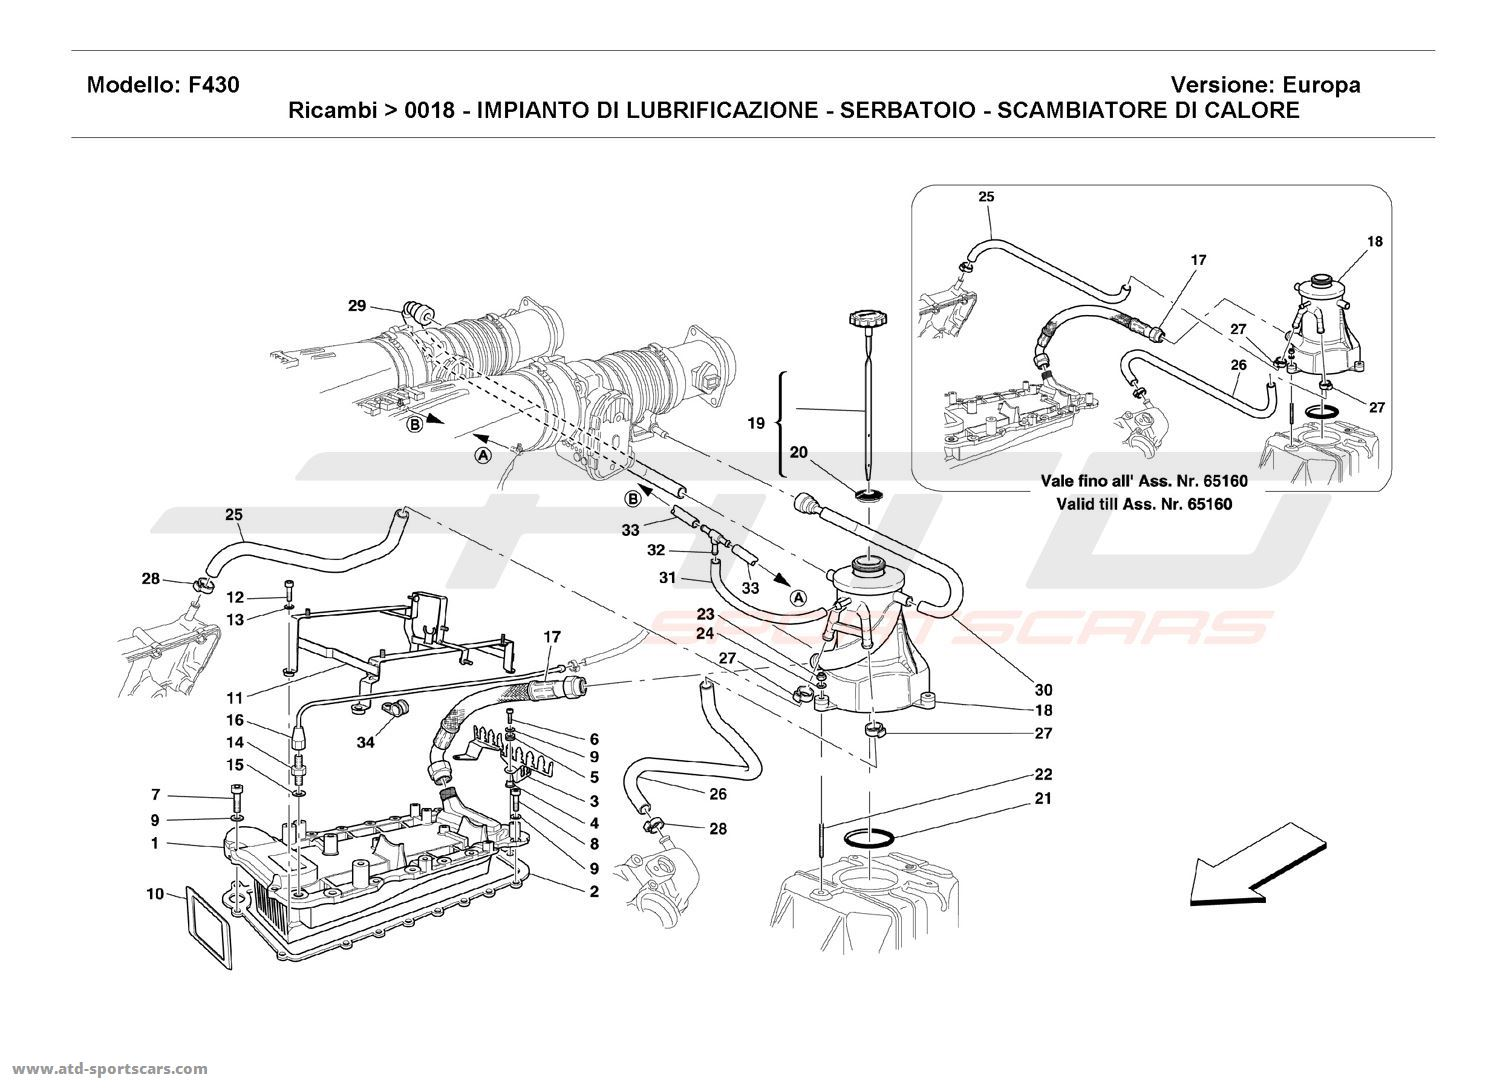 LUBRICATION SYSTEM - TANK - HEATER EXCHANGER